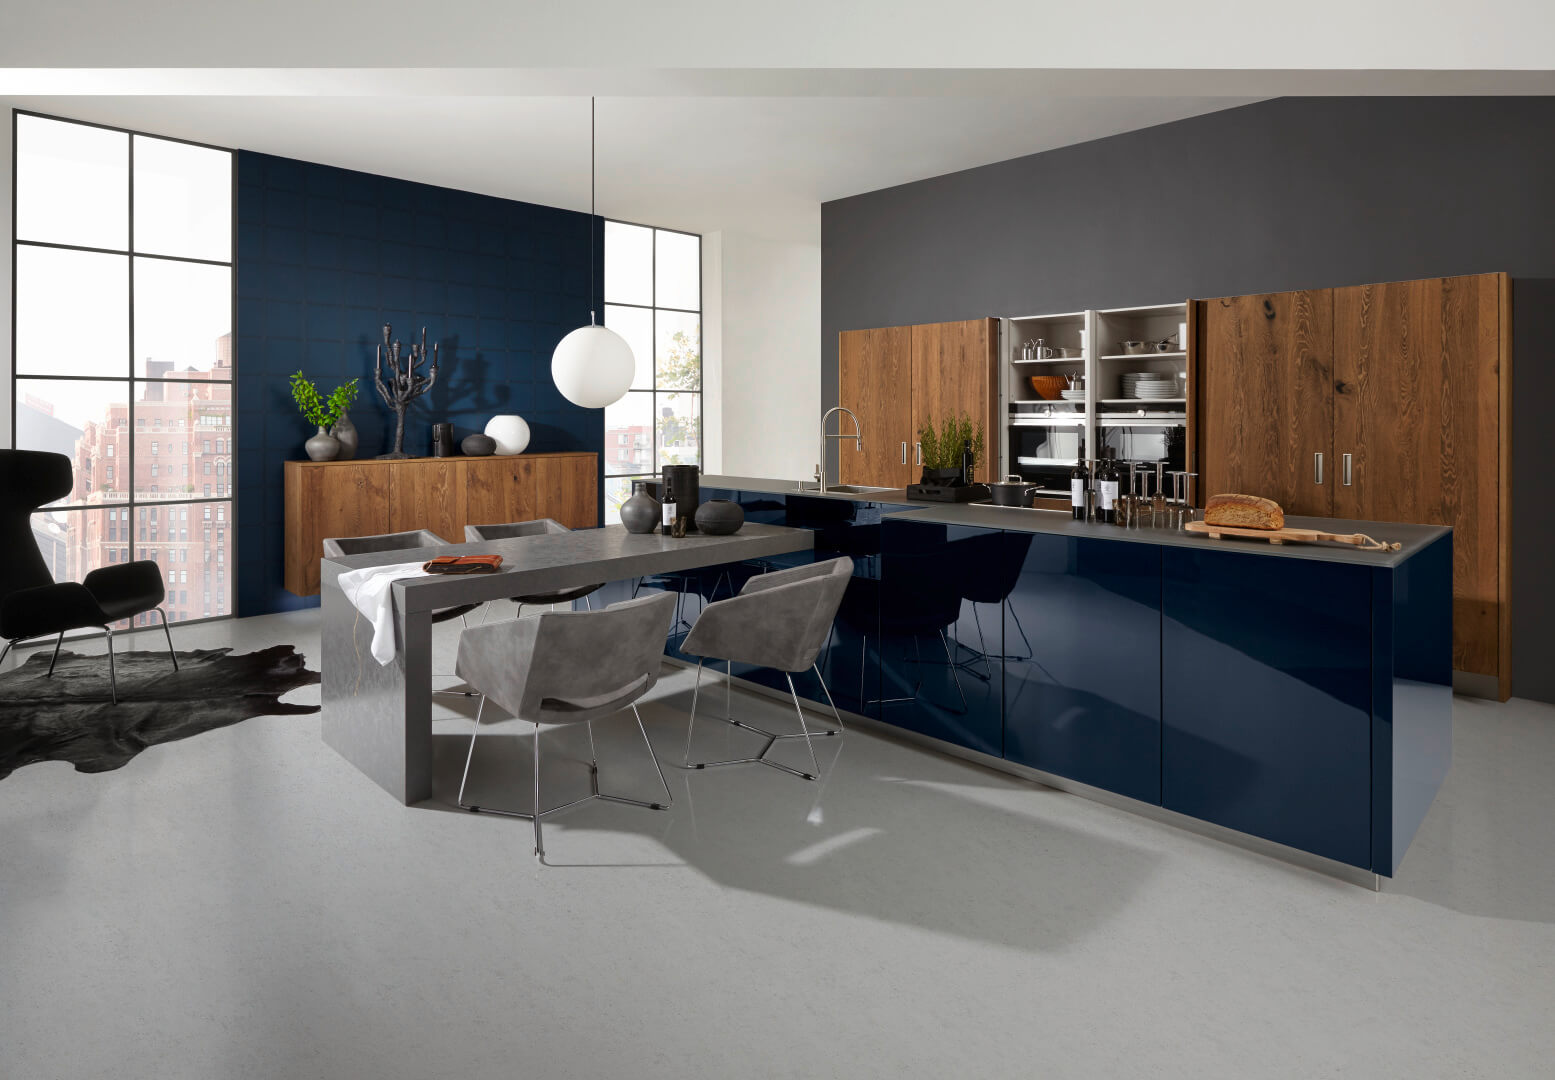 Nolte-Kitchens-Legno-Gallery2